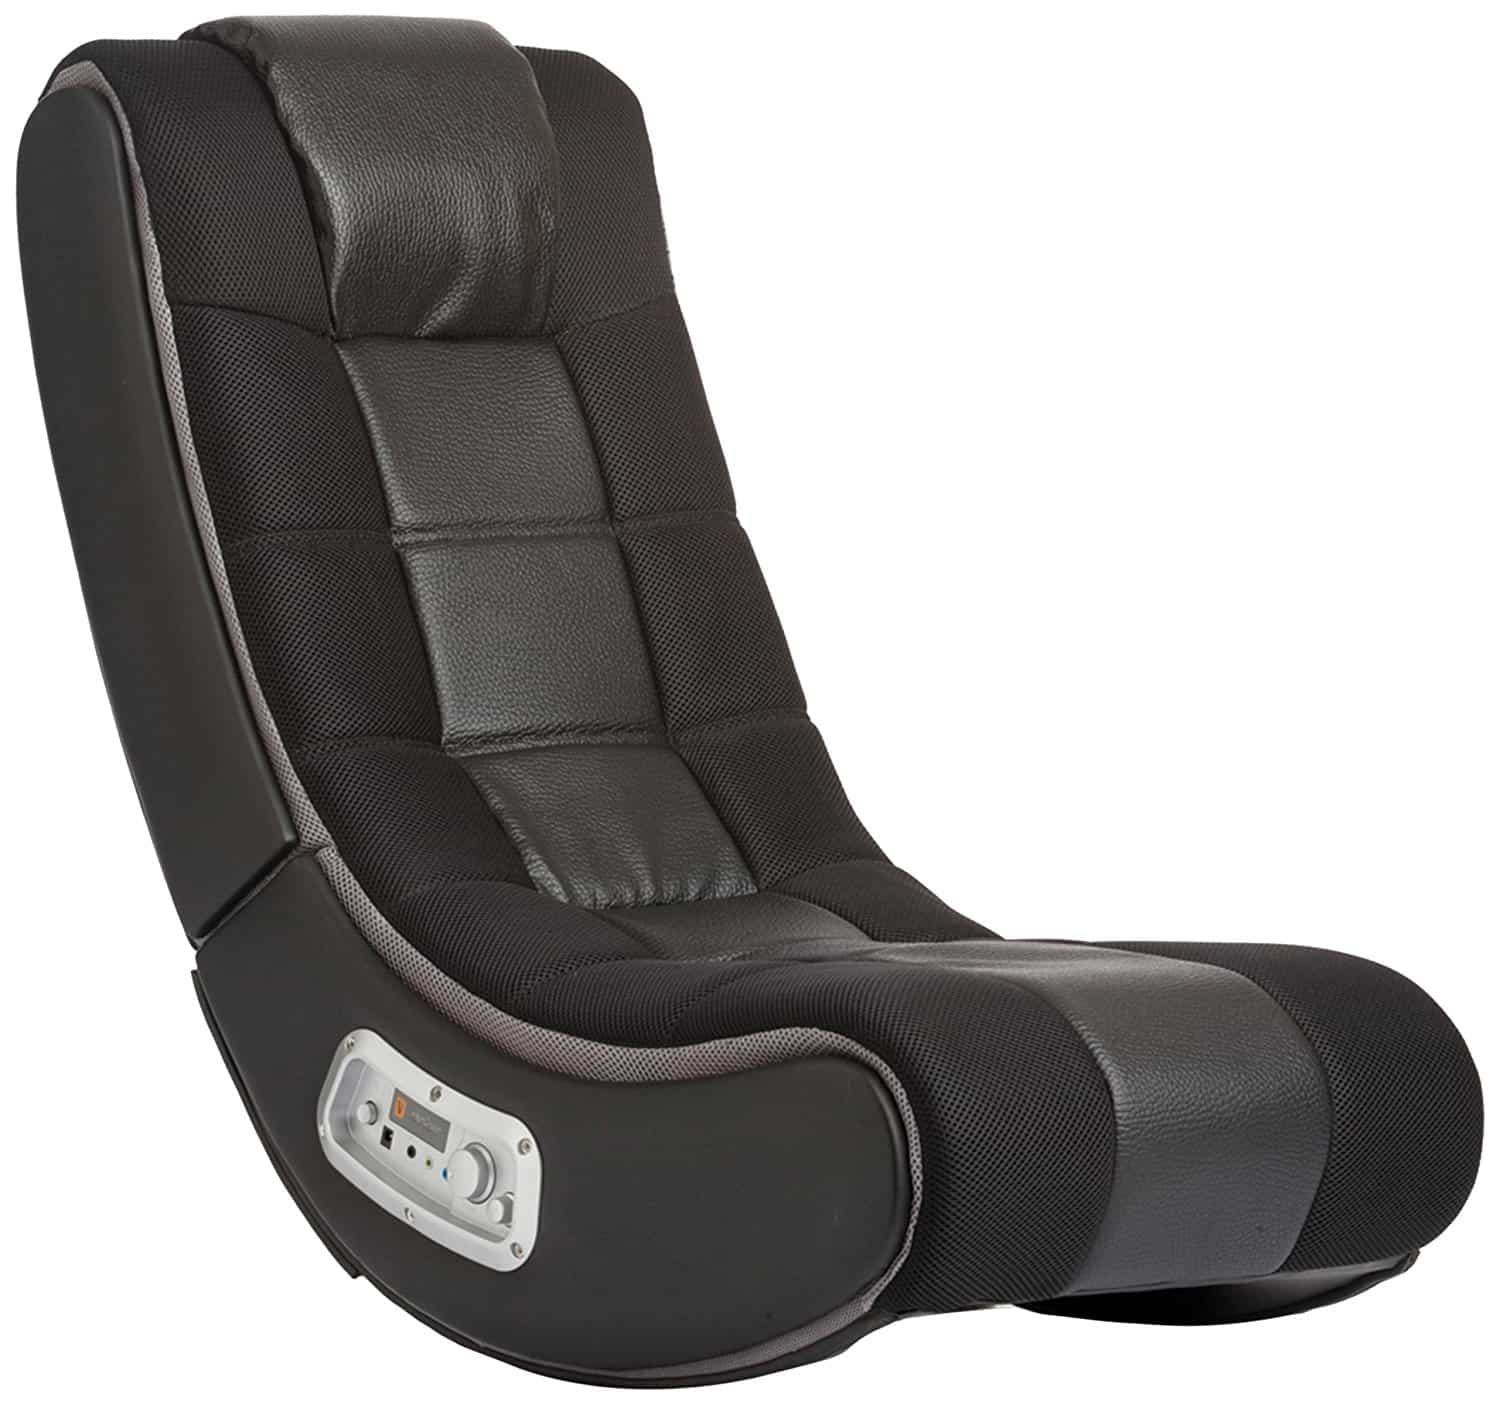 gaming chair reviews